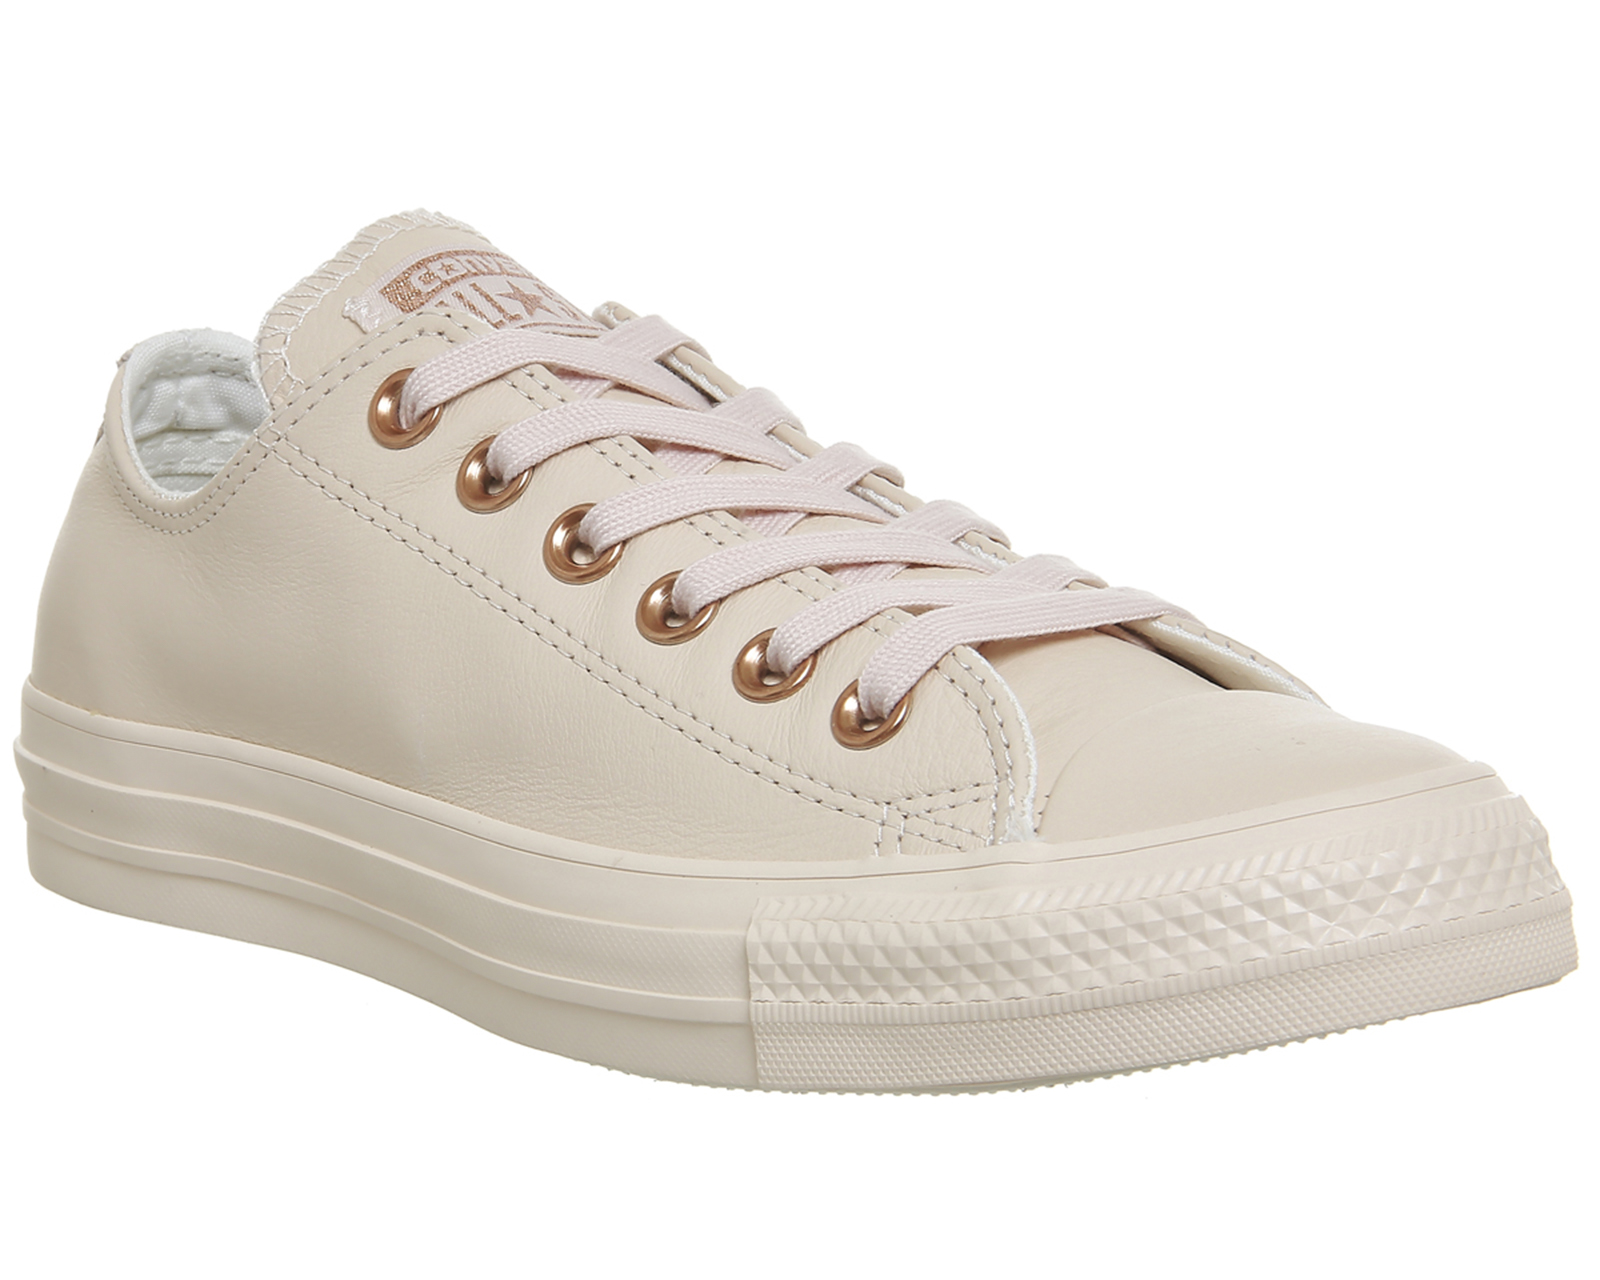 4895517c624d Sentinel Womens Converse All Star Low Leather Pastel Rose Tan Rose Gold  Trainers Shoes